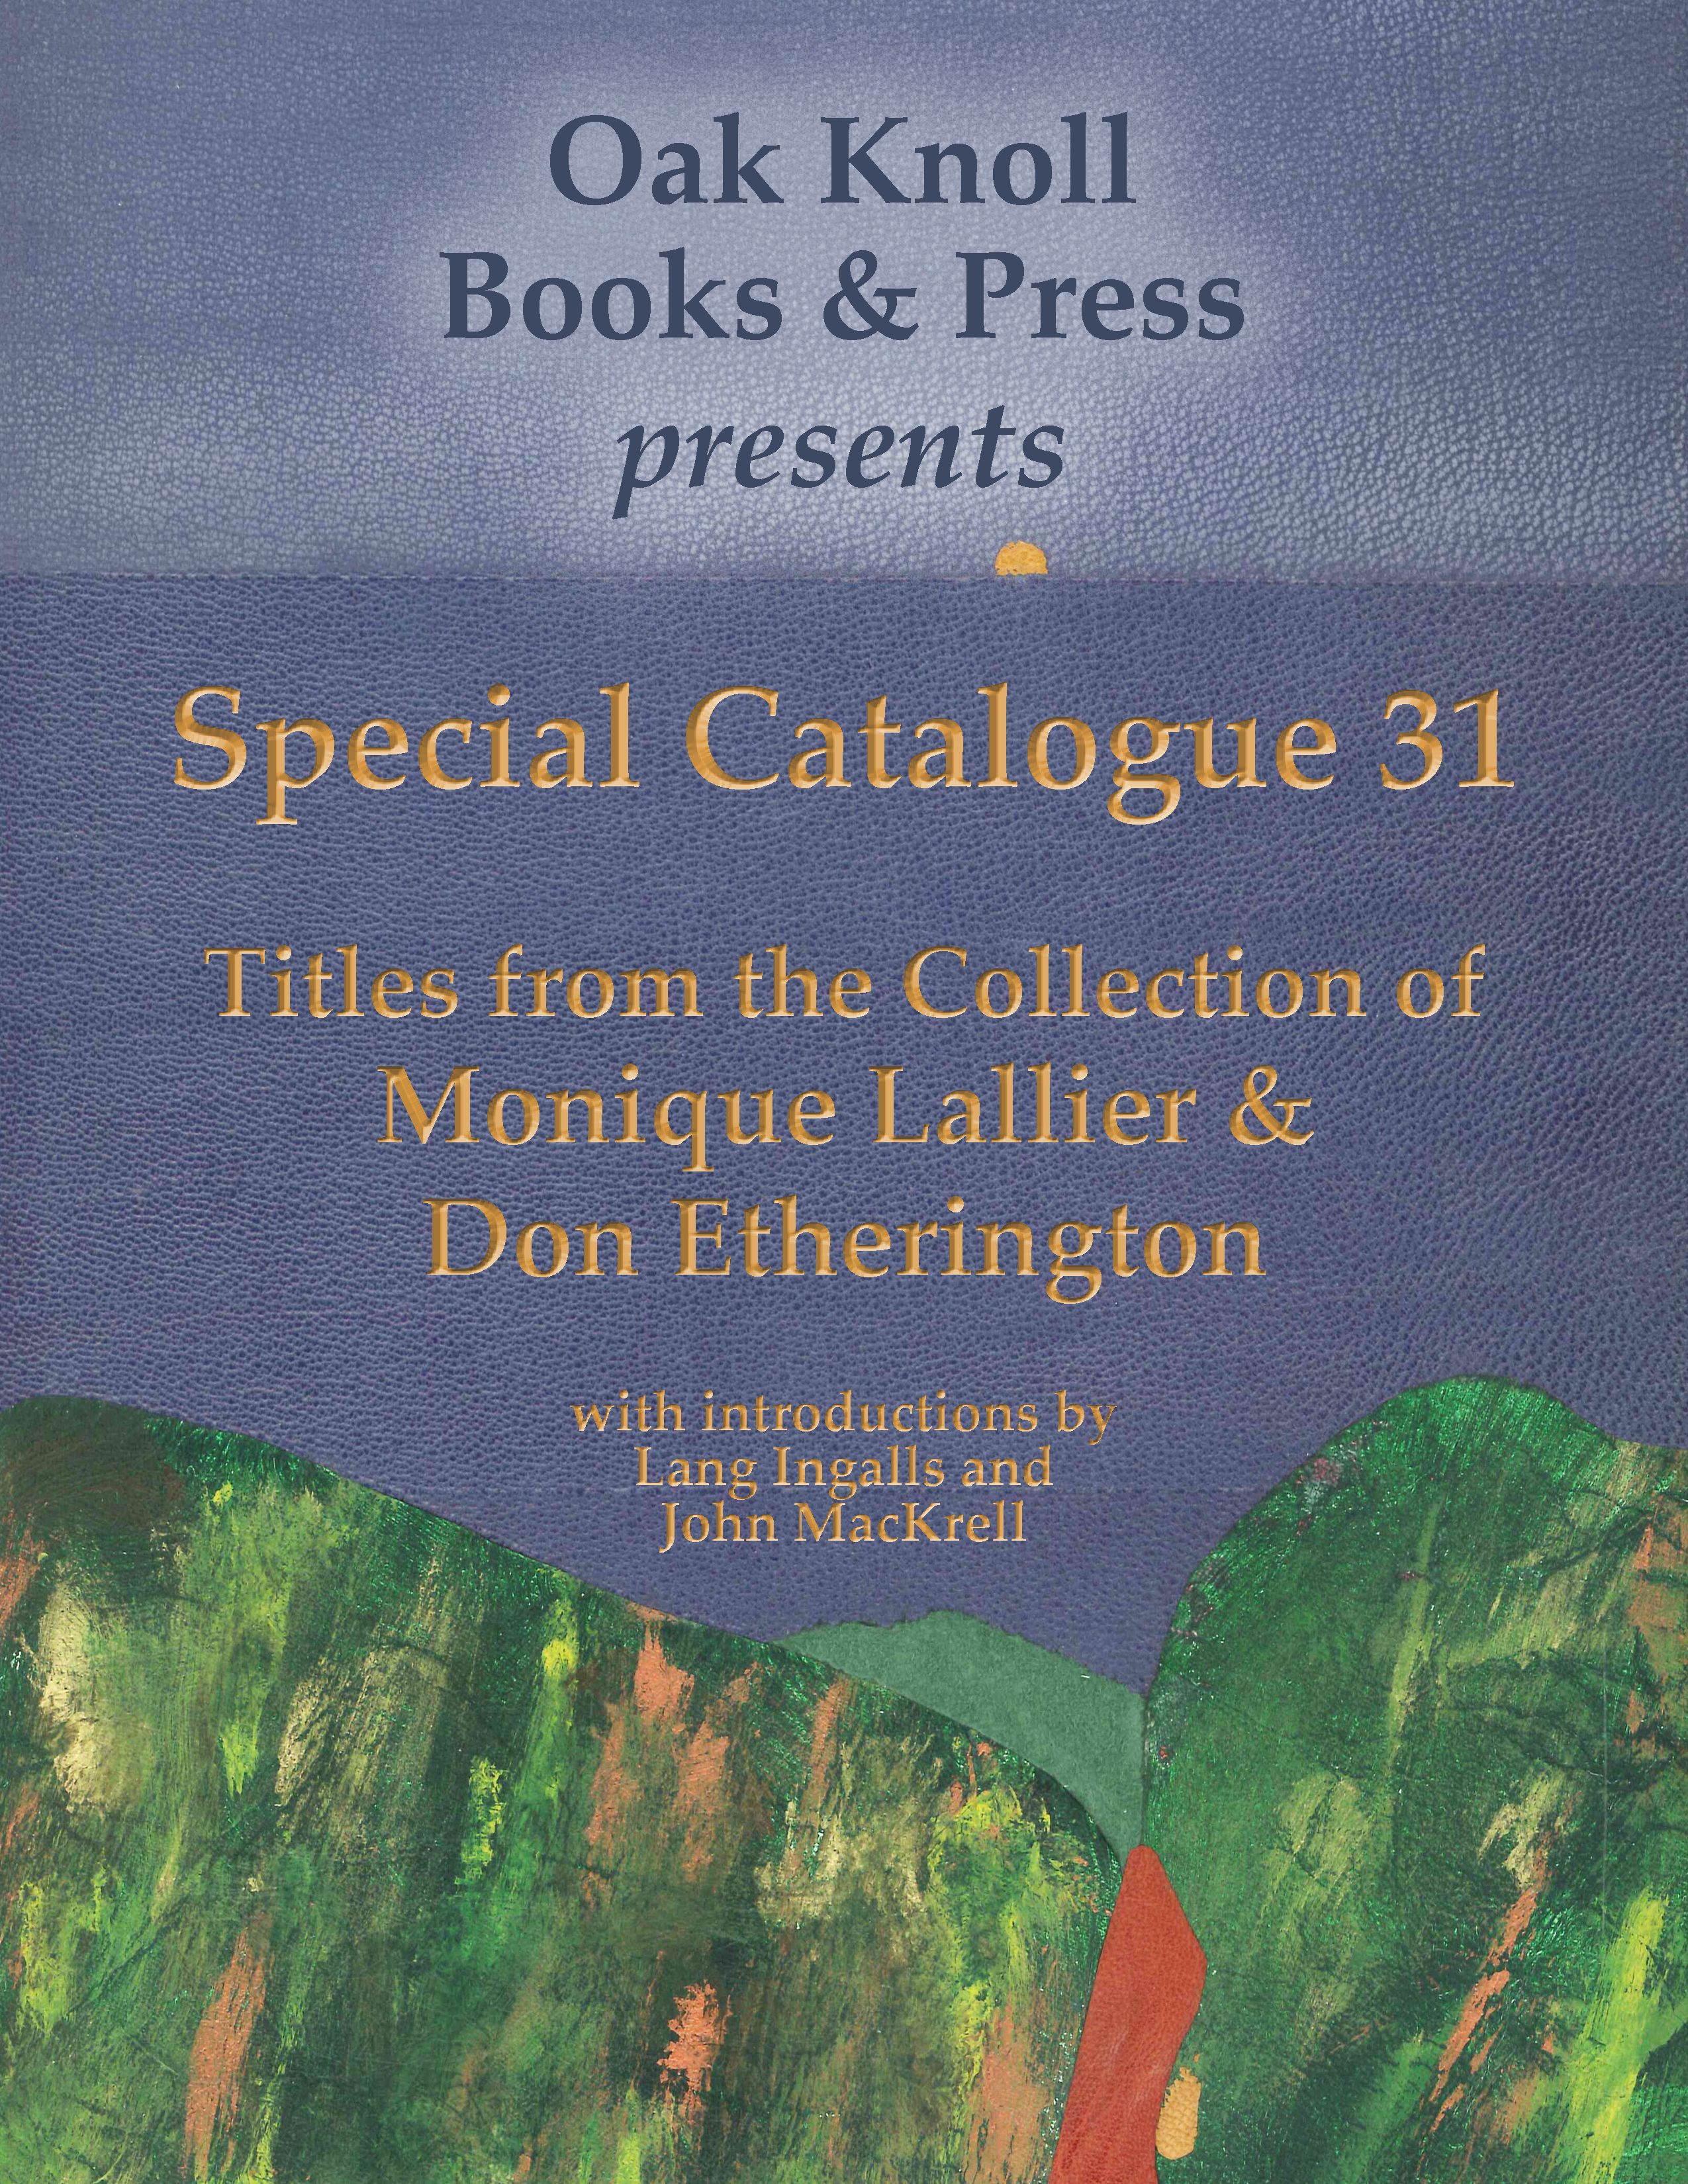 Special Catalogue #31: Titles from the Collection of Monique Lallier & Don Etherington